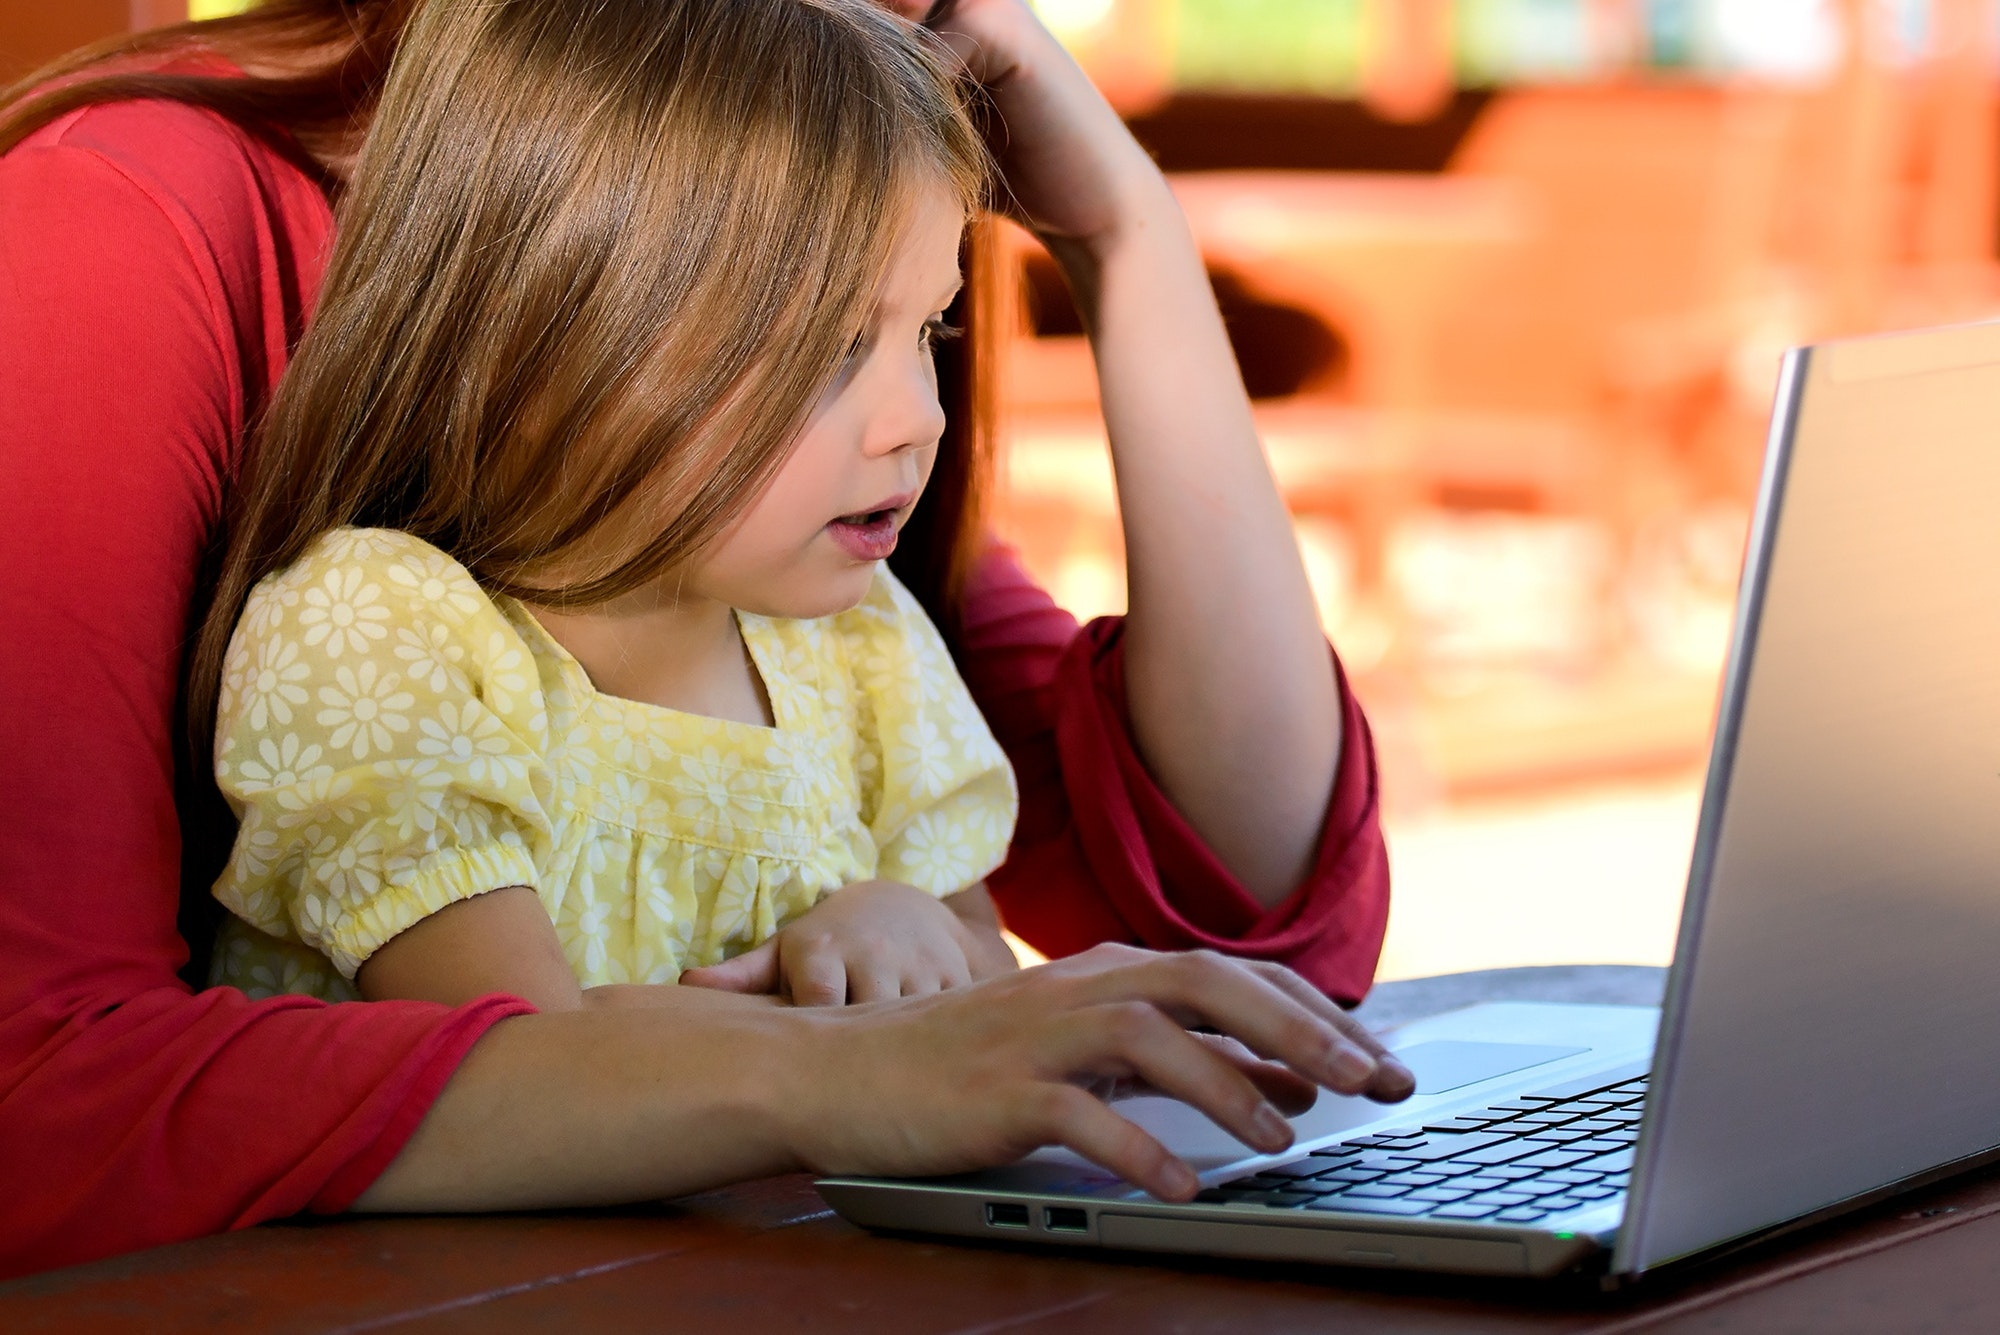 Little Girl Looking at Computer